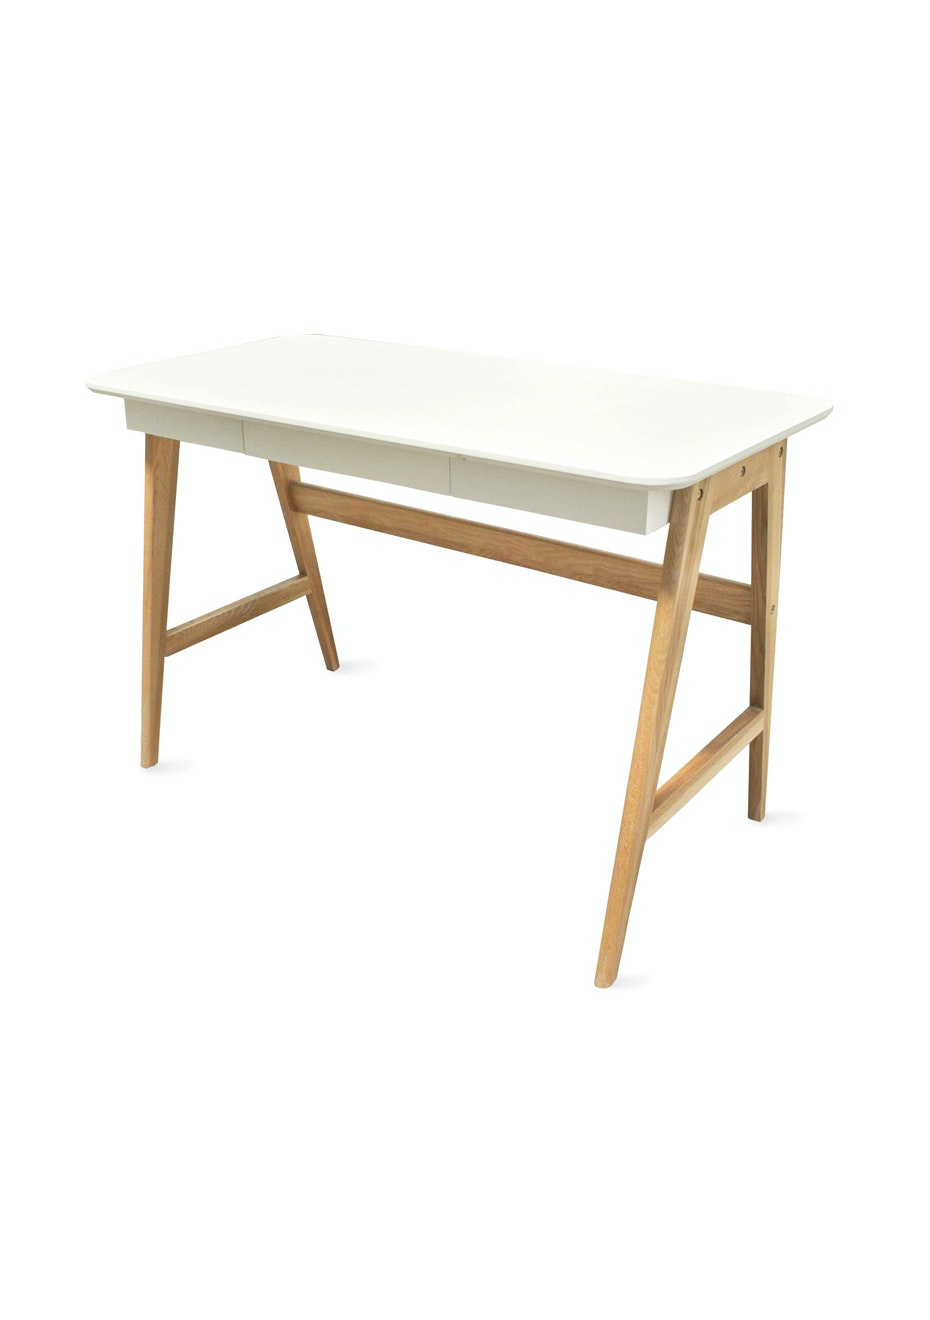 Furniture By Design - Radius Desk- White and Oak